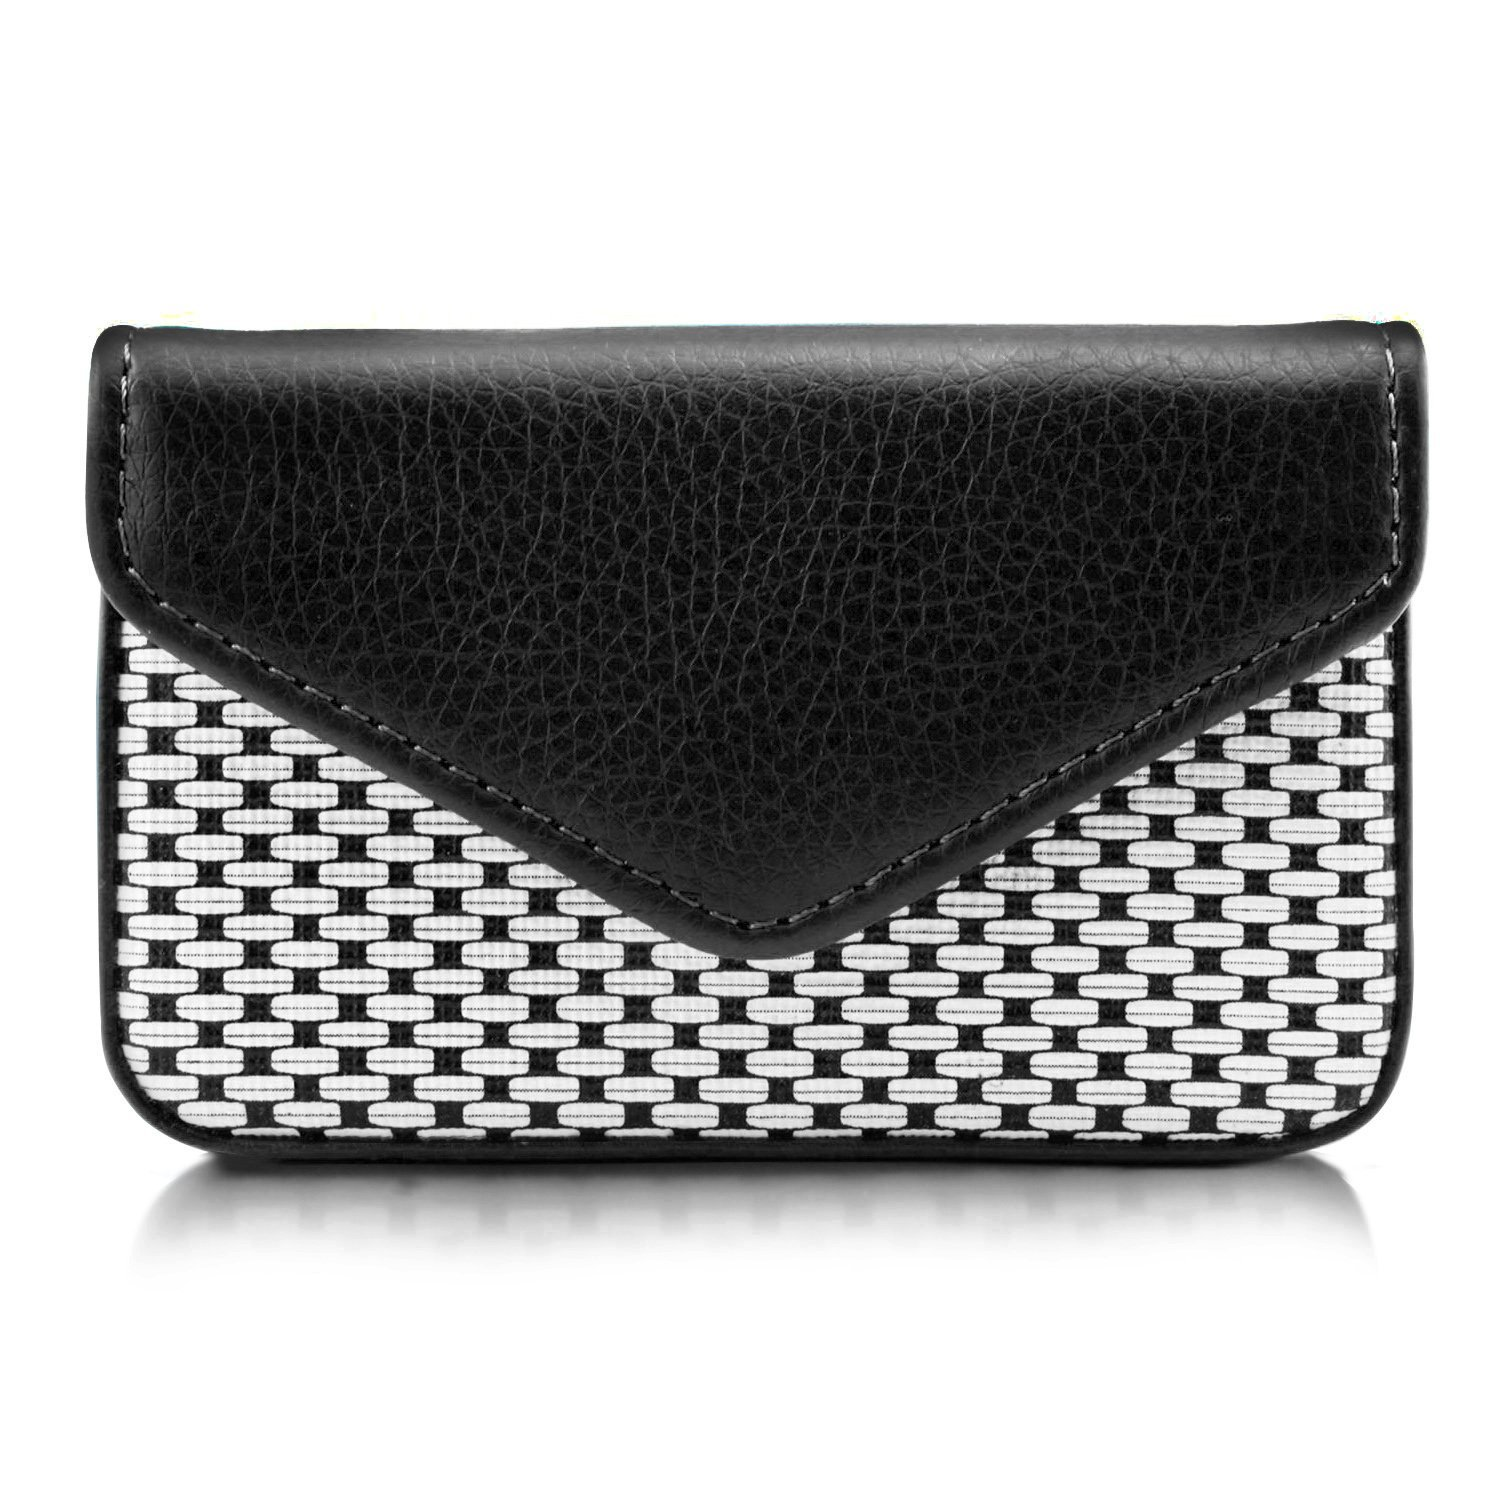 MaxGear Professional Leather Business Card Holder Wallet for Women or Men, Credit Card Case Business Name Card Holders Cards Organizer with Magnetic Shut Fashion Black